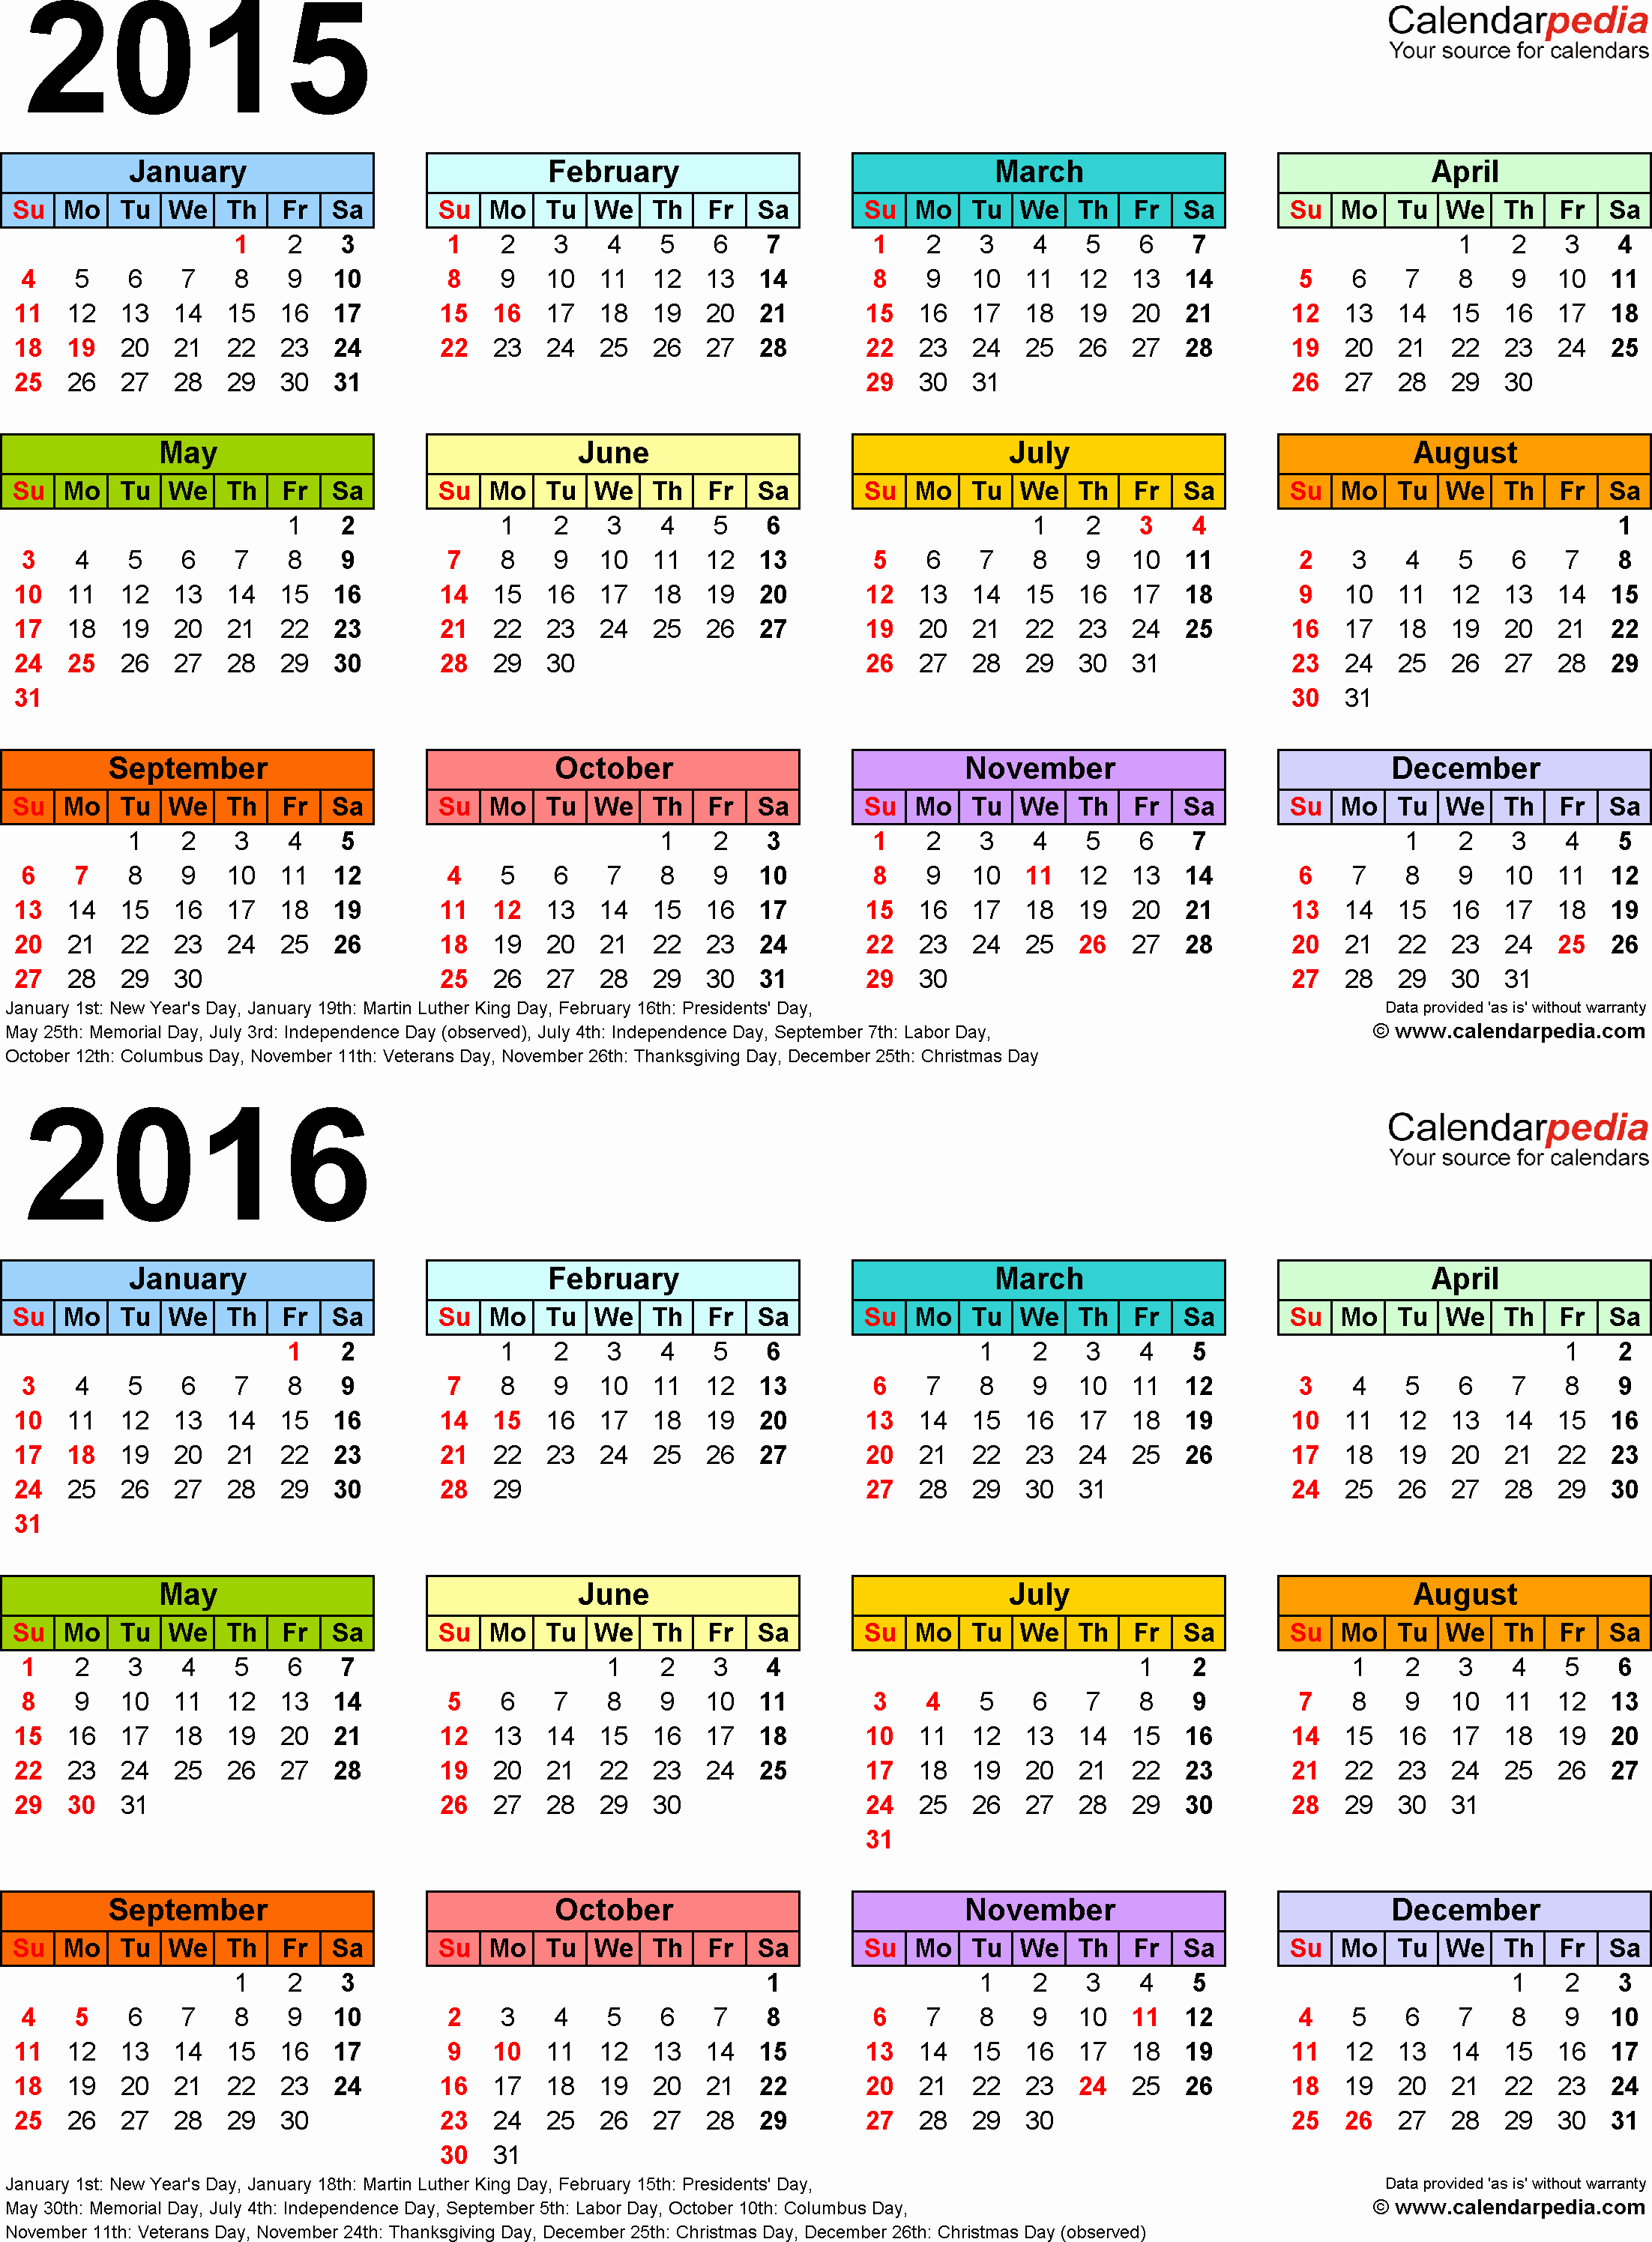 Free Yearly Calendar Templates 2015 Elegant 2015 2016 Calendar Free Printable Two Year Excel Calendars